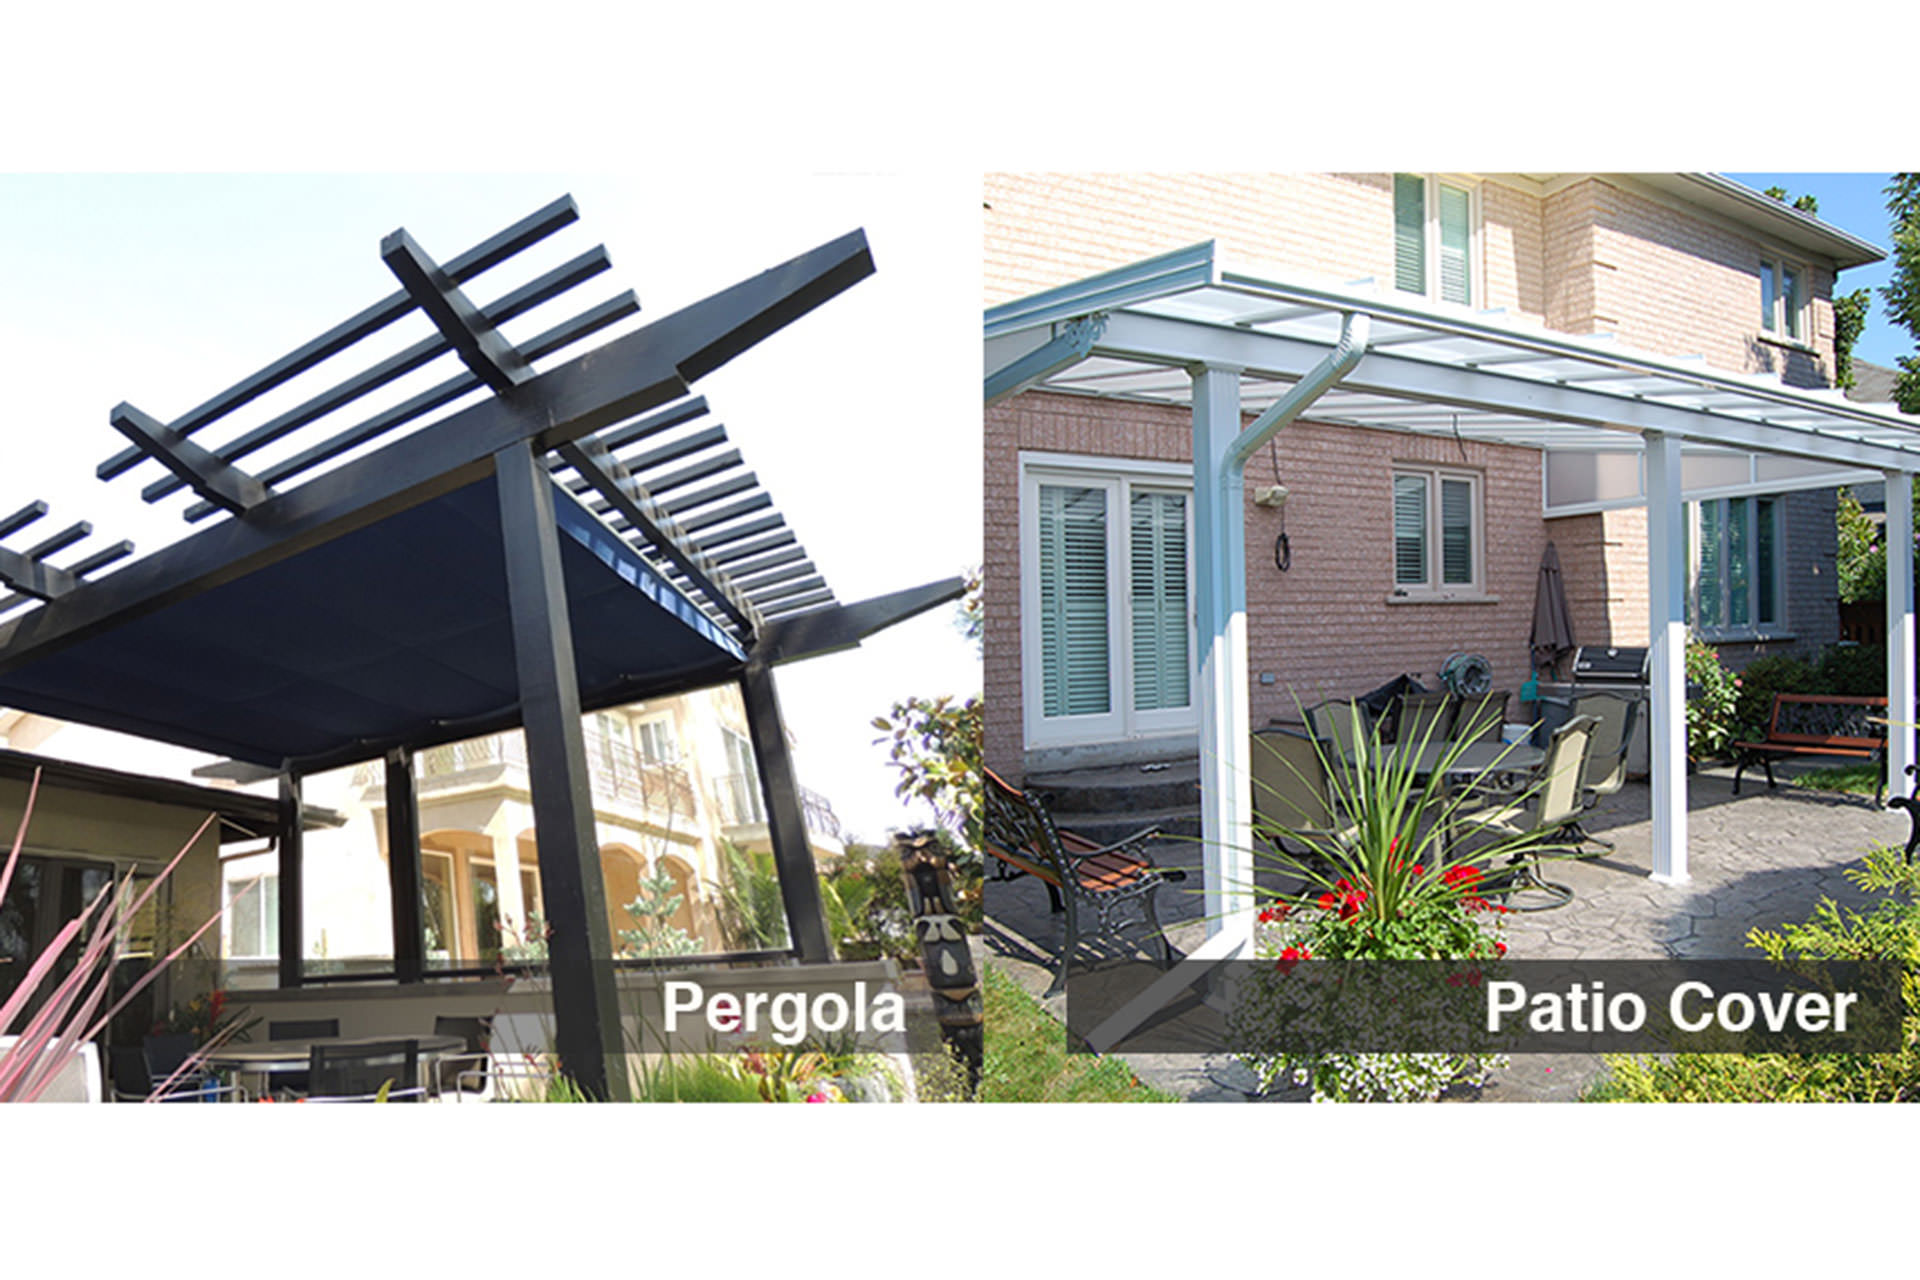 canopies covers stewart shade slice ft of a creating xl patio martha introduction